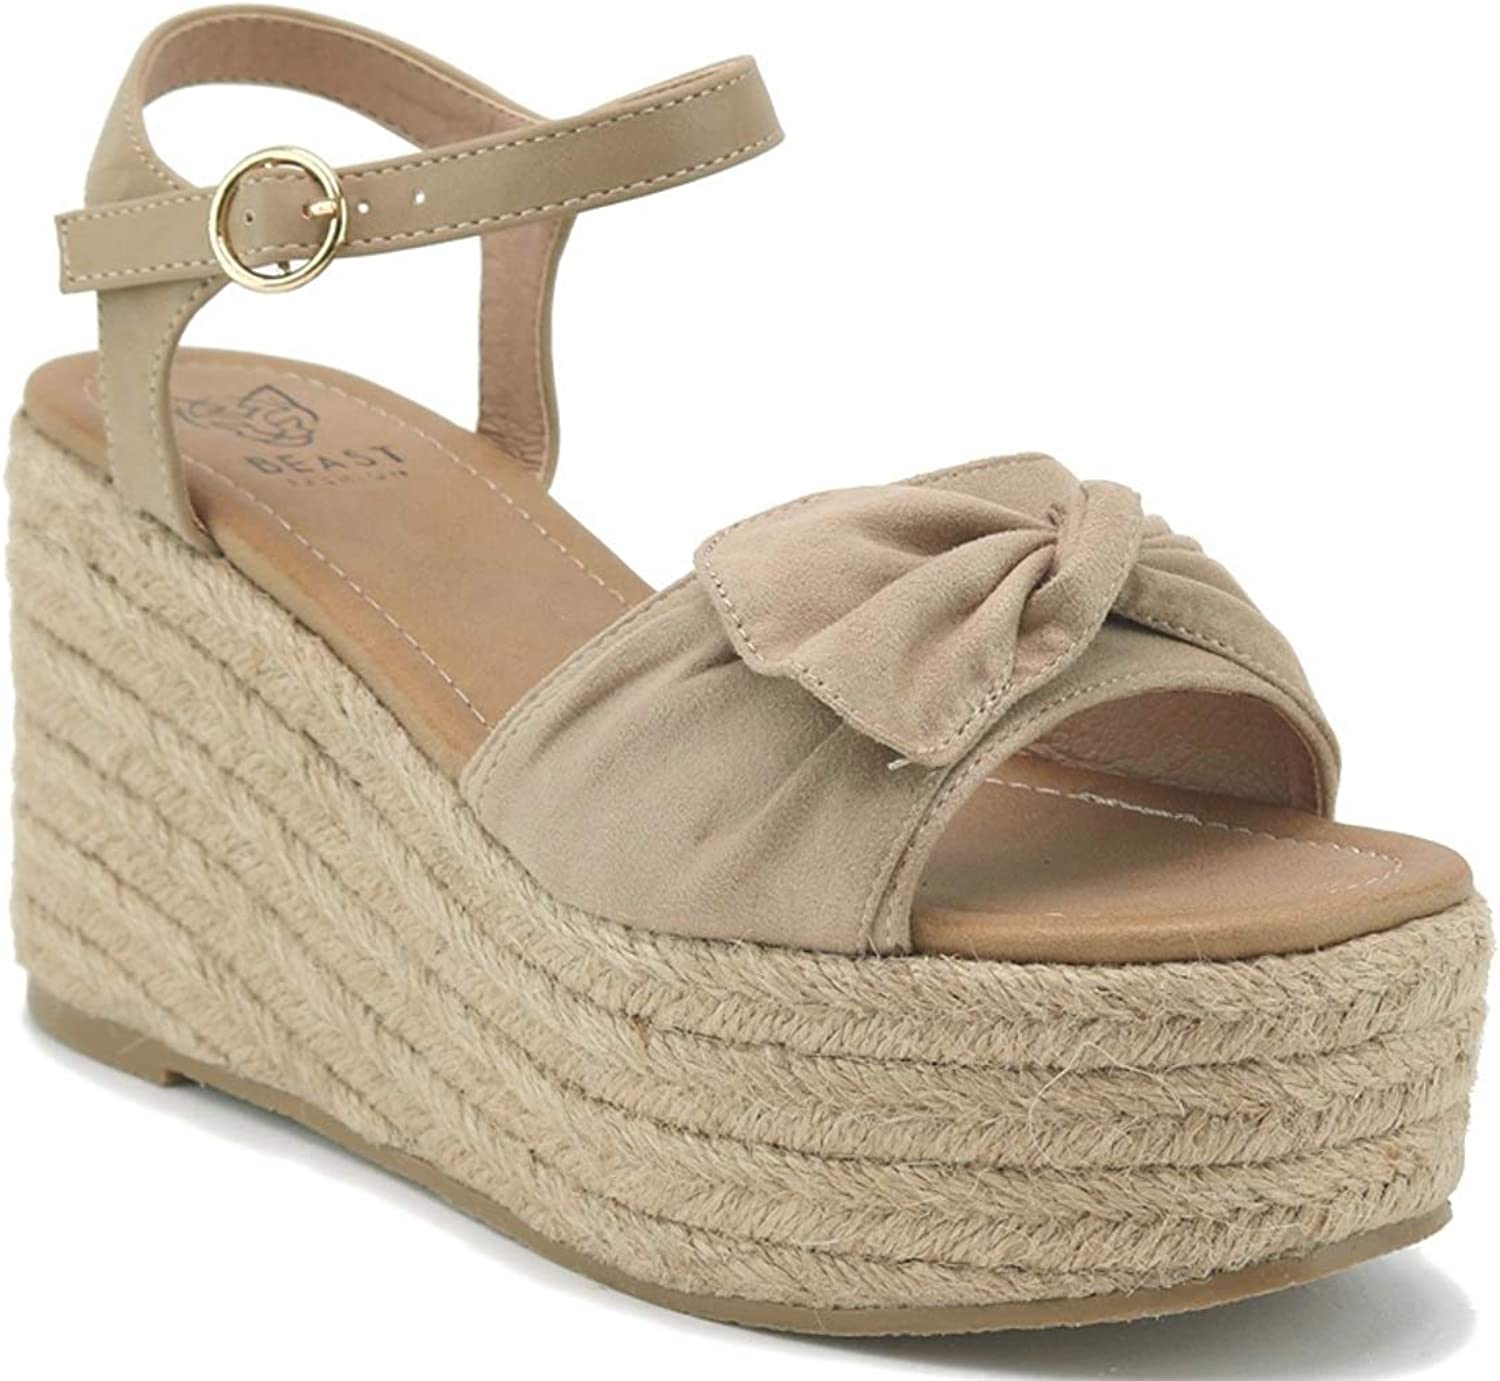 Beast Fashion Nell-01 Suede Bow Open Toe Espadrille Platform Wedge Sandal